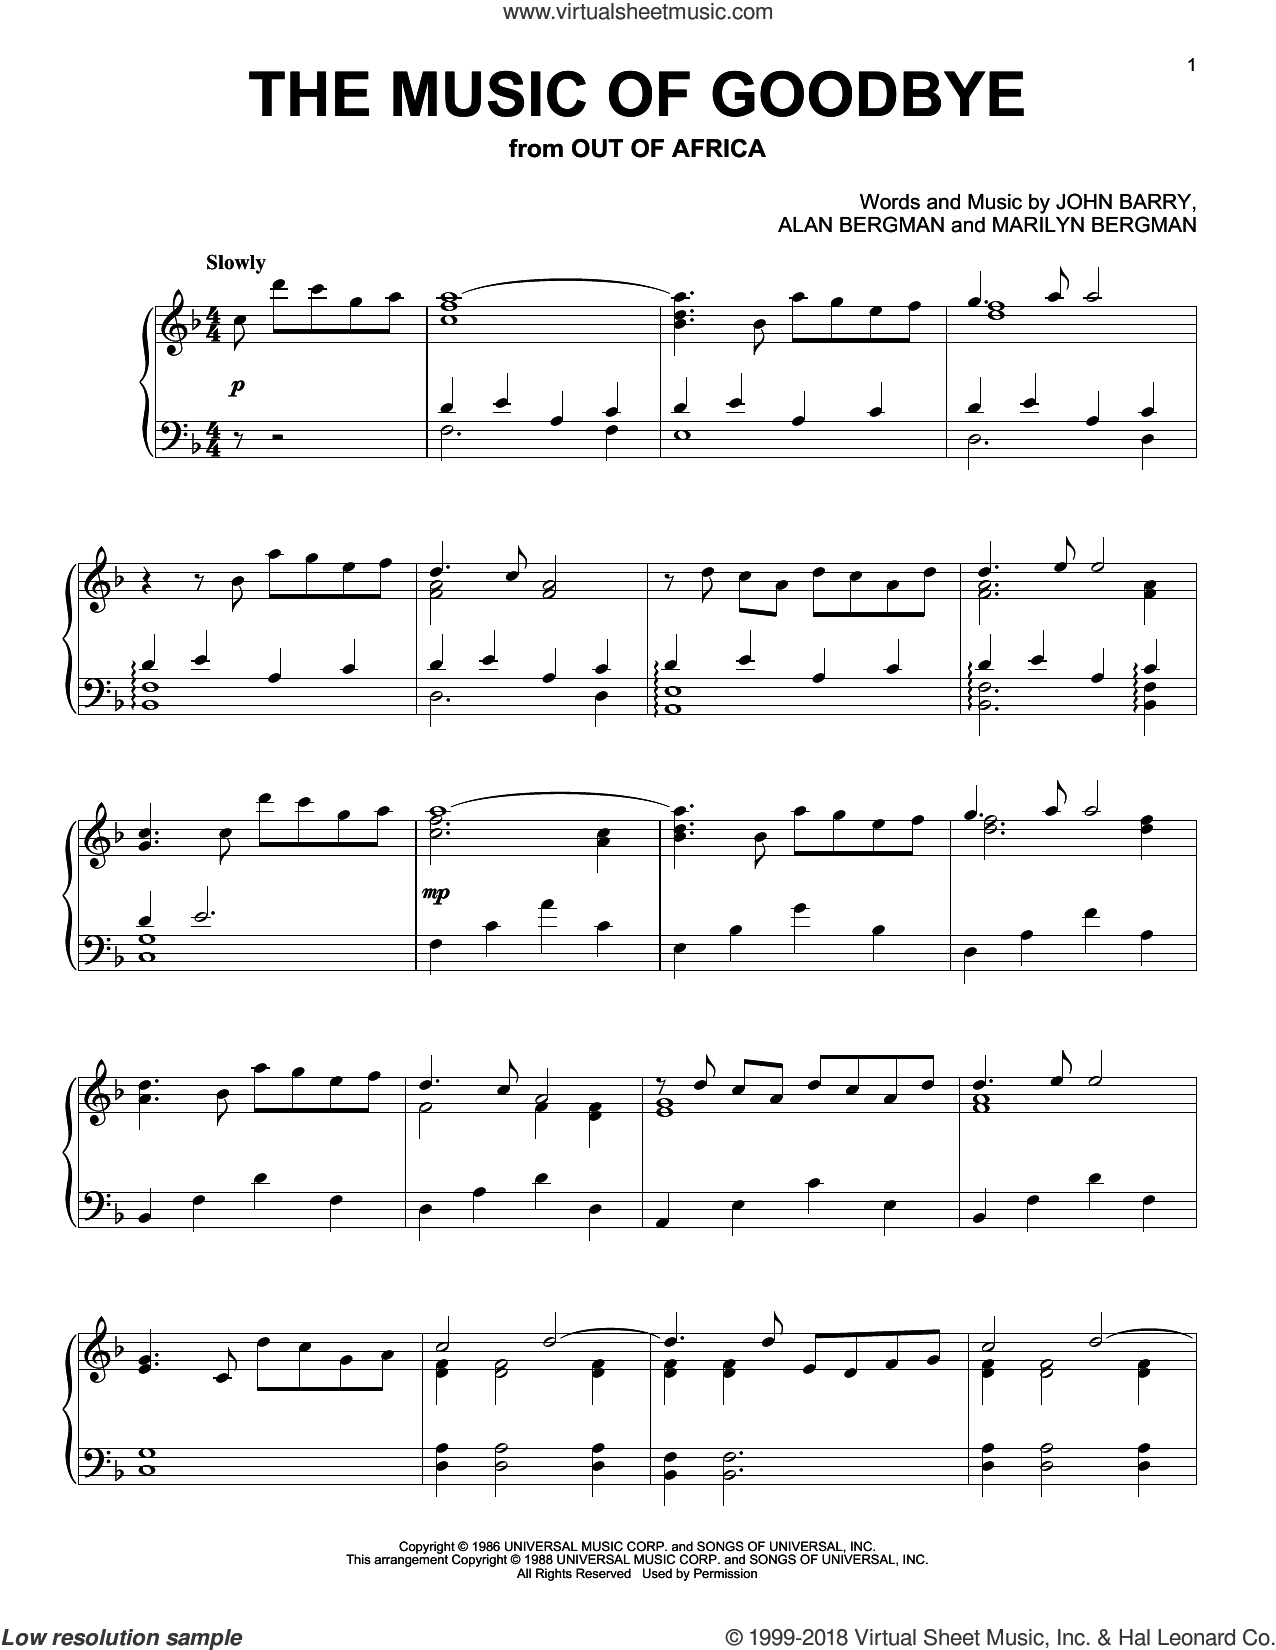 The Music Of Goodbye sheet music for piano solo by John Barry, Alan Bergman and Marilyn Bergman, intermediate skill level